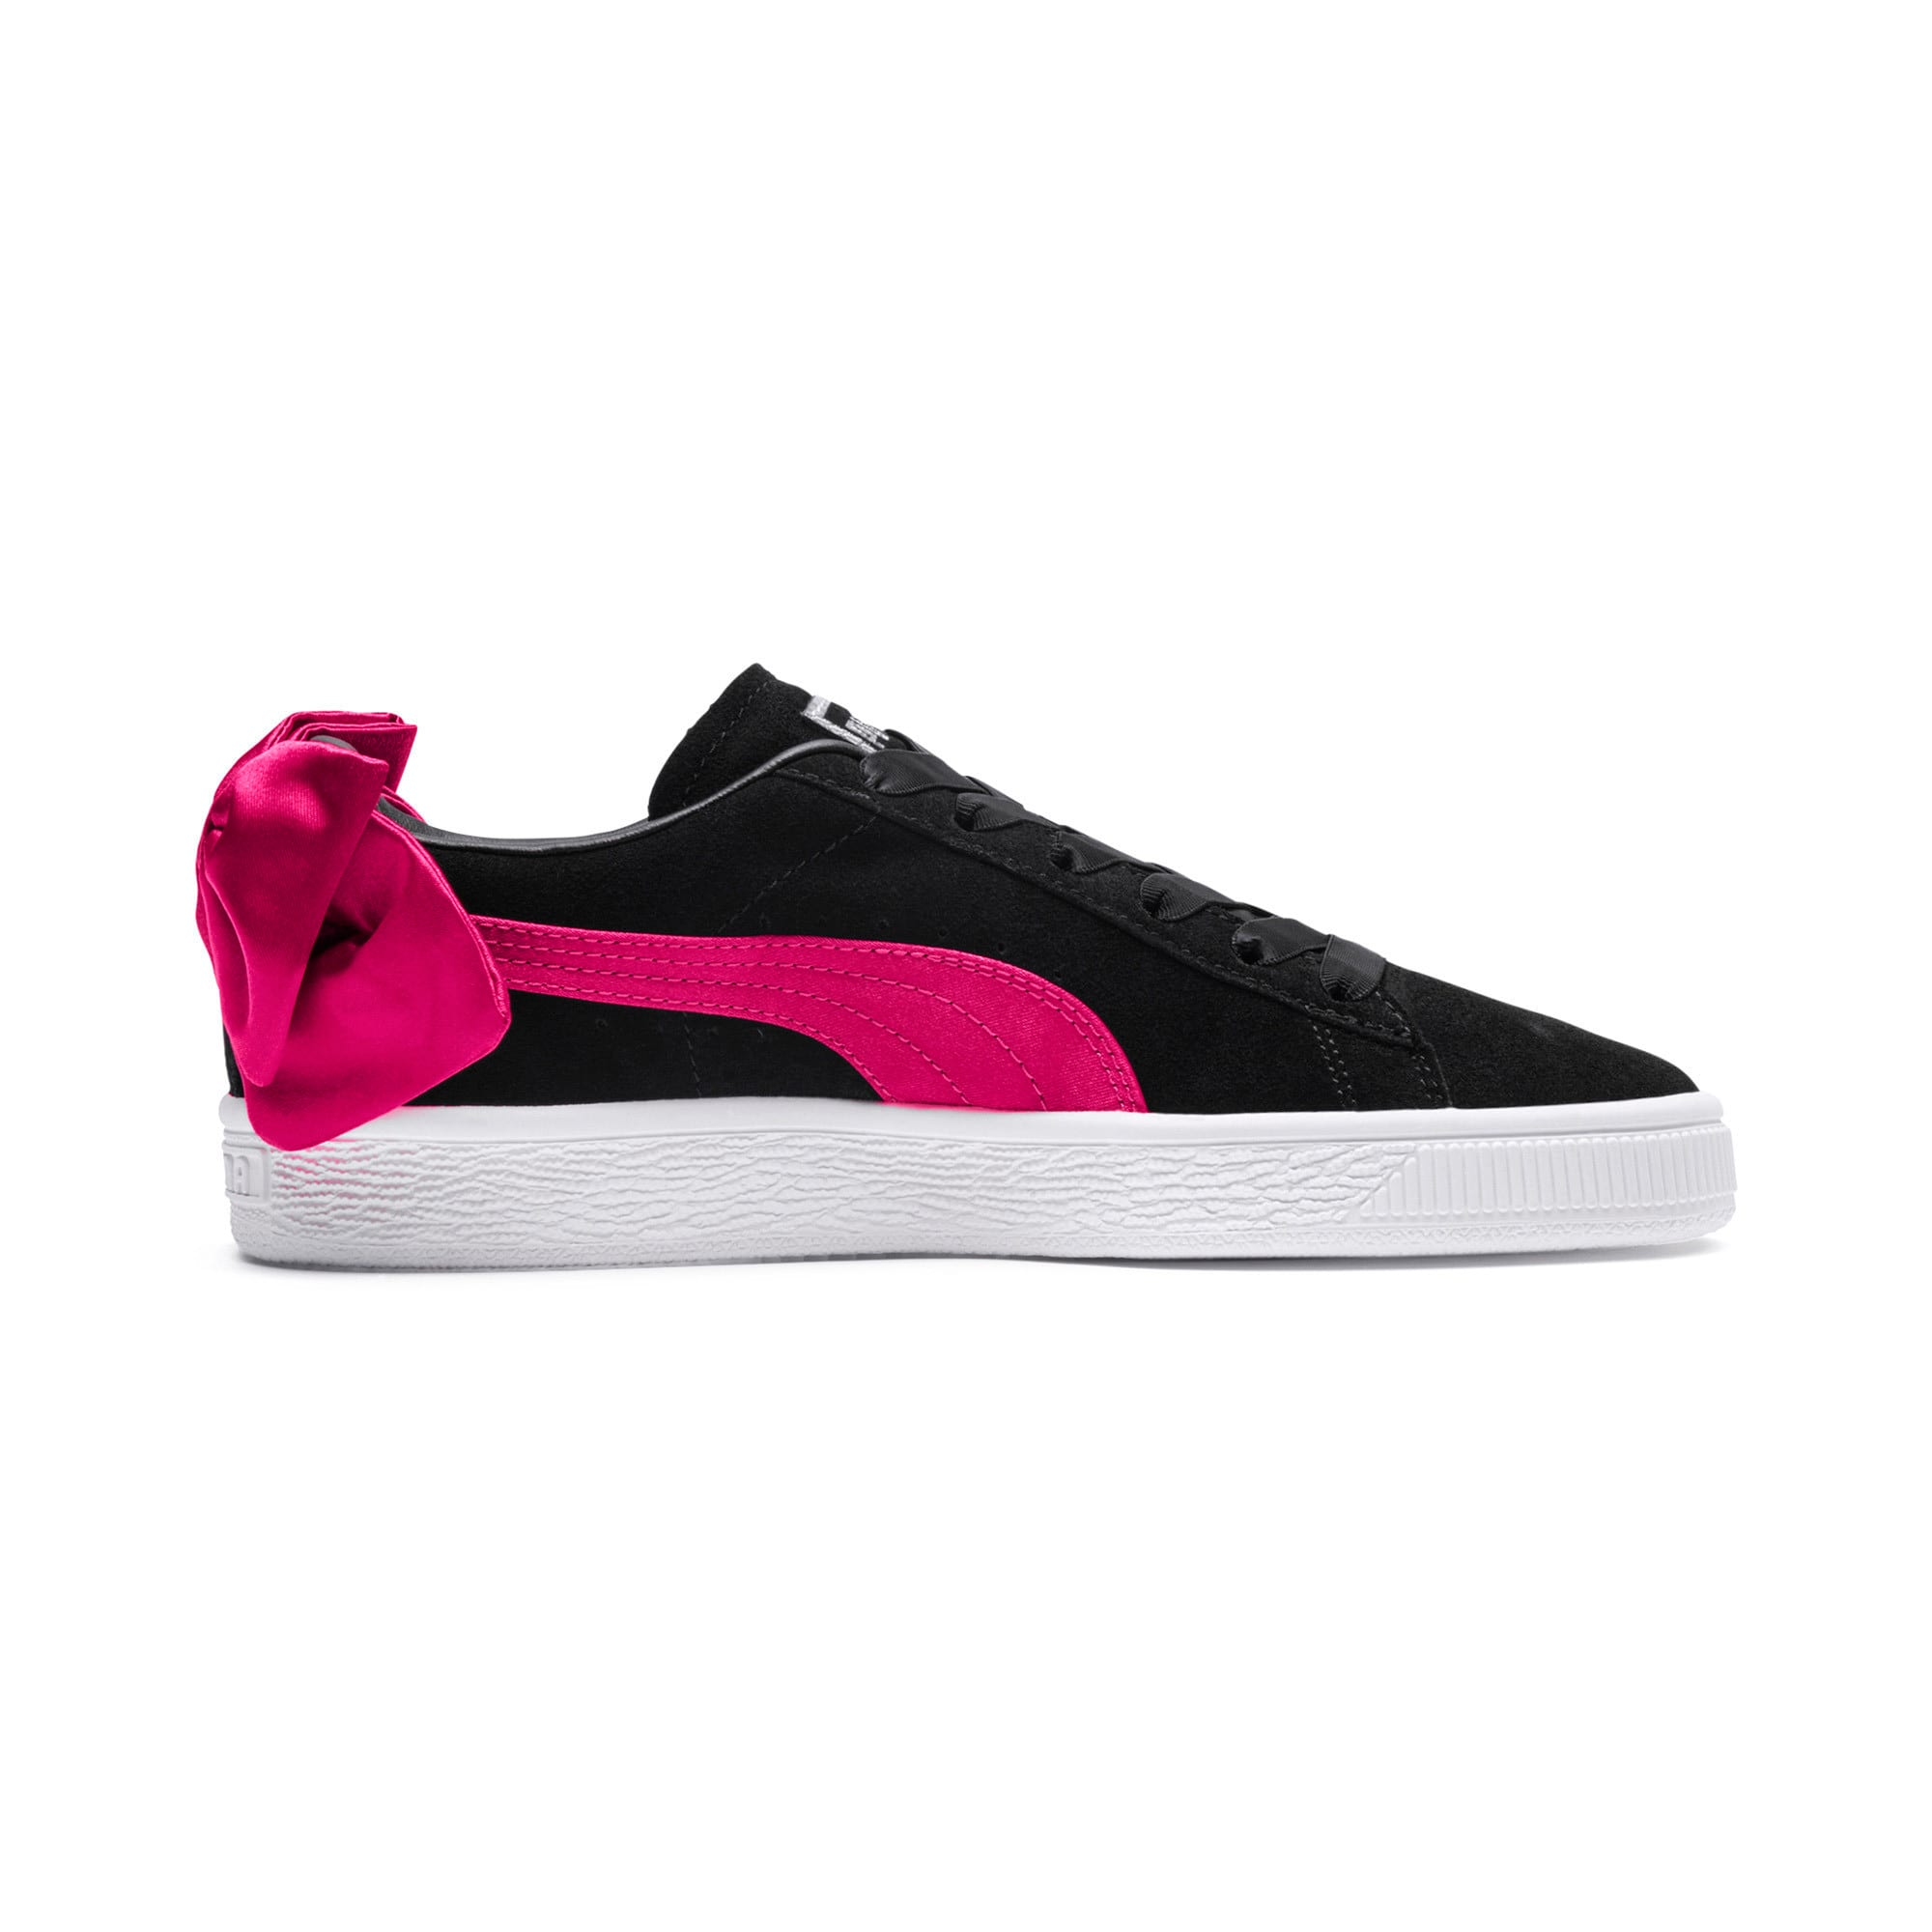 Thumbnail 5 of Suede Bow Girls' Trainers, Puma Black-Beetroot Purple, medium-IND